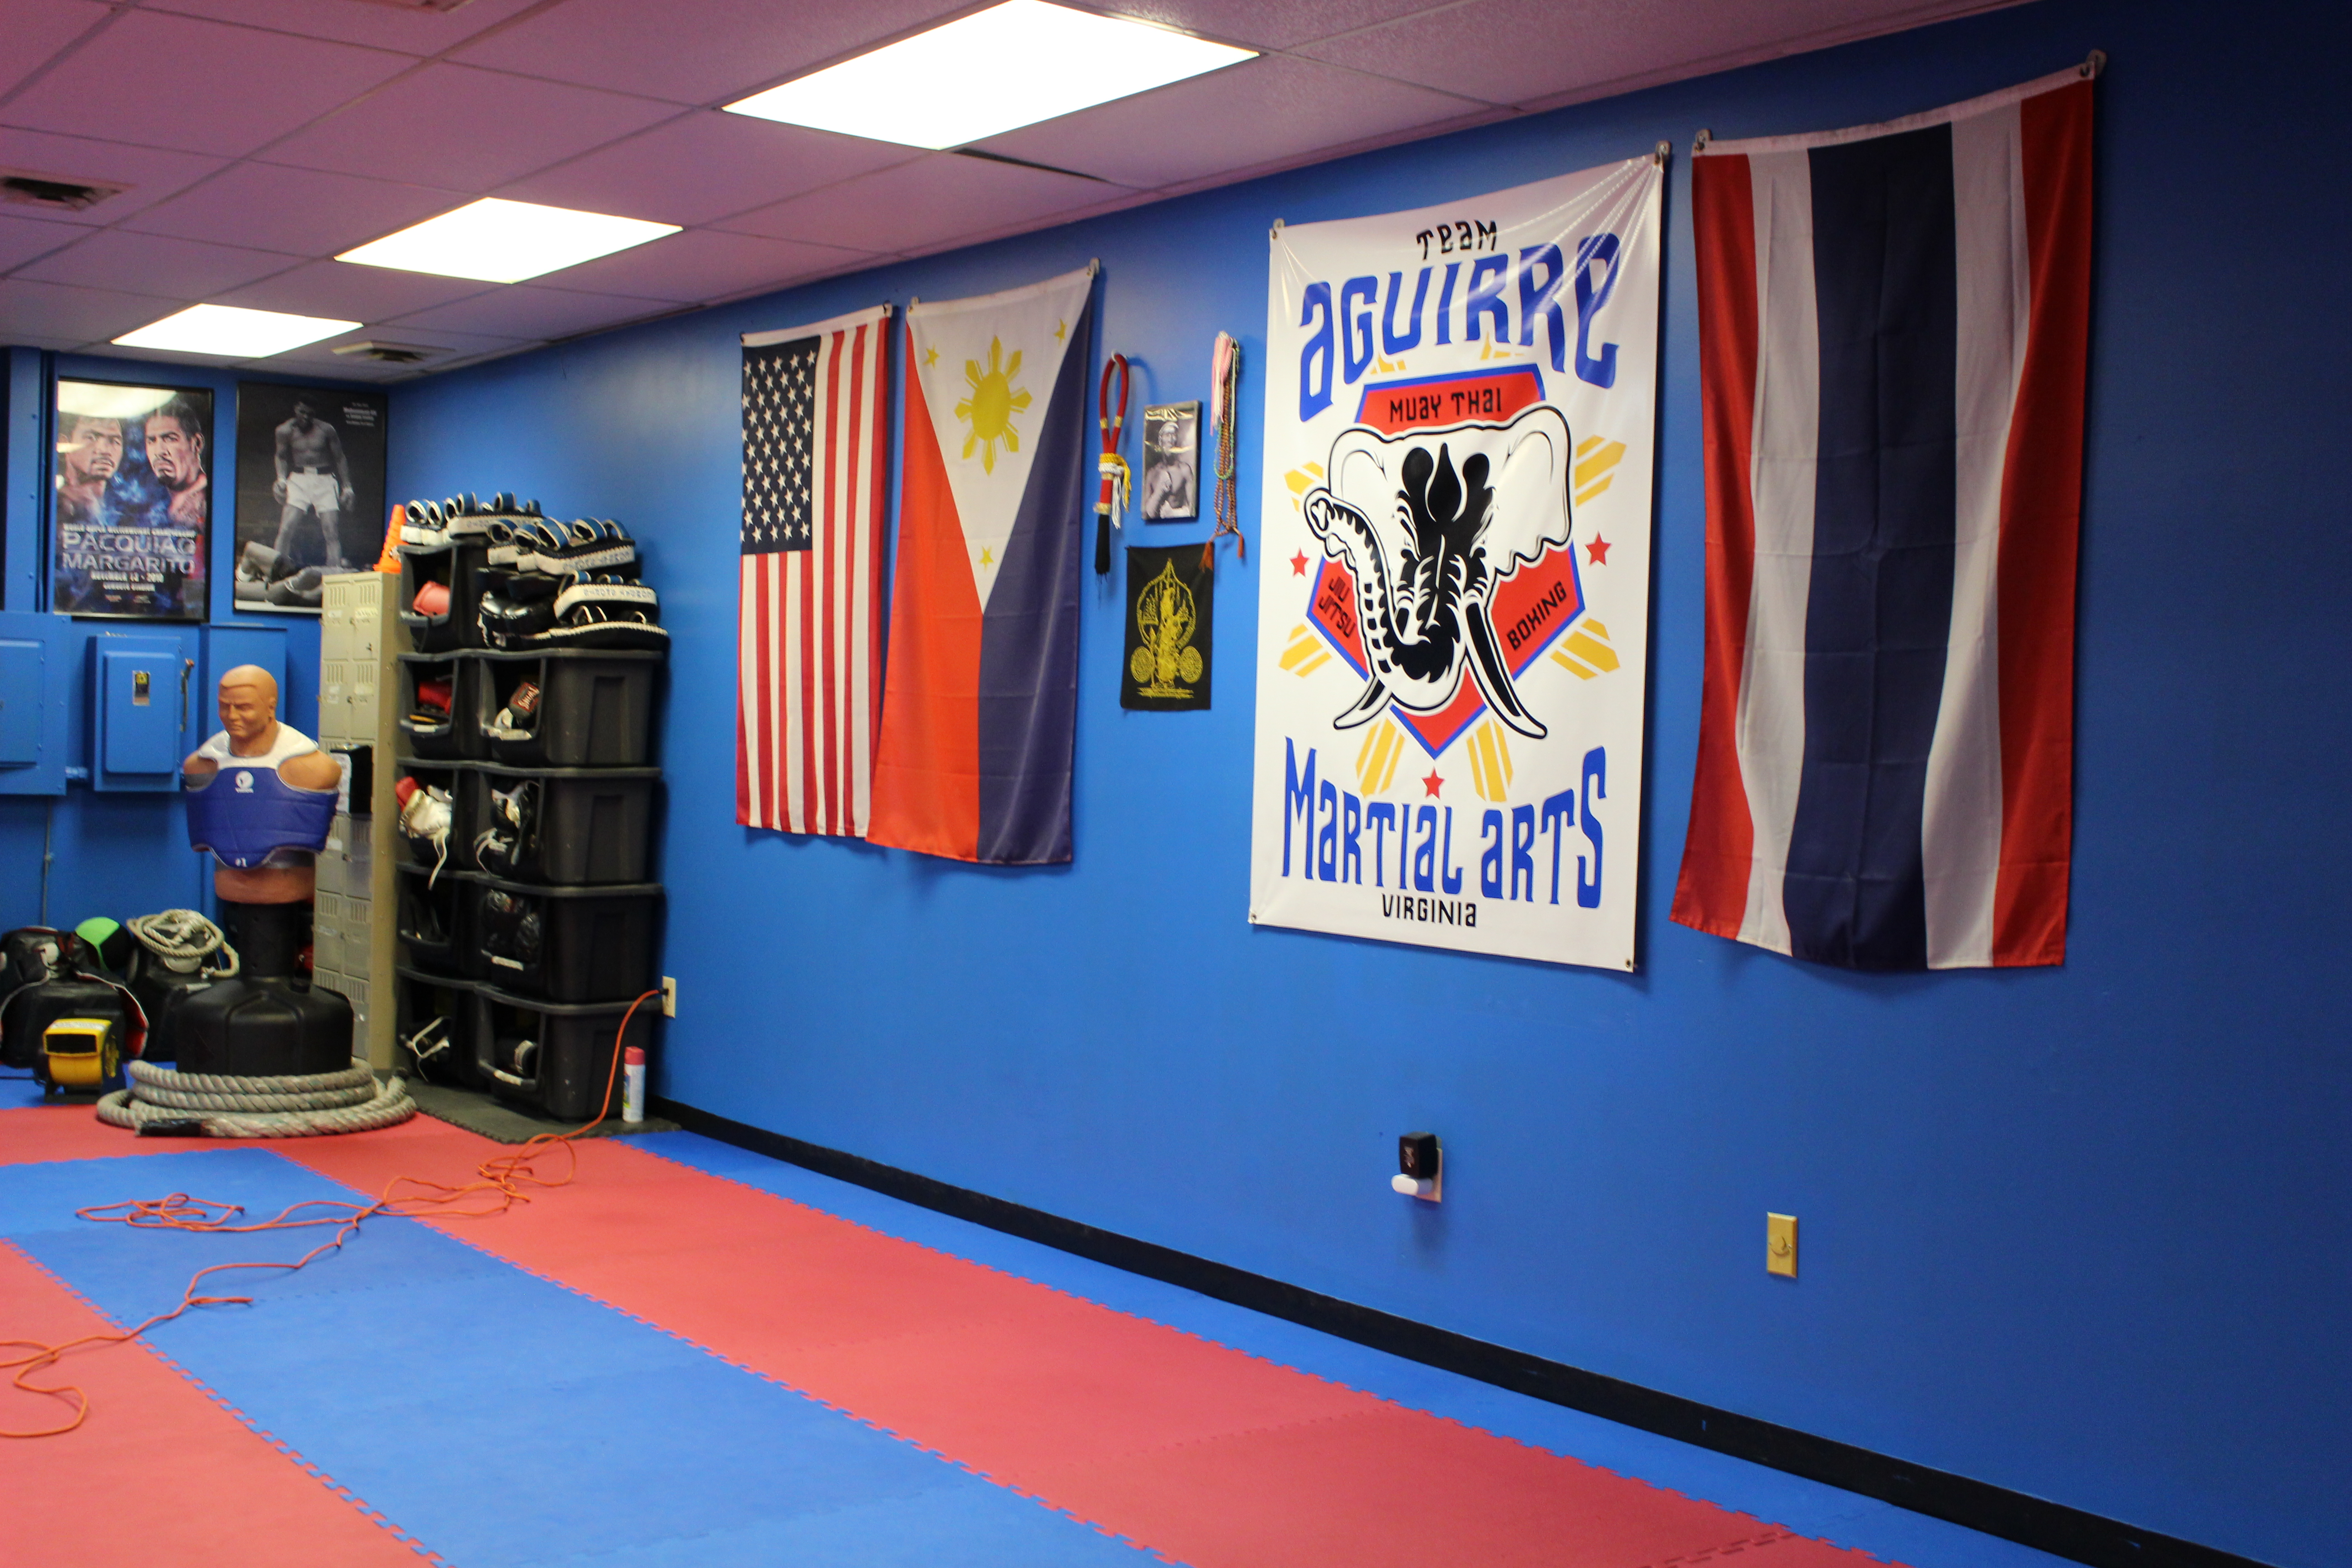 Welcome to Team Aguirre Martial Arts